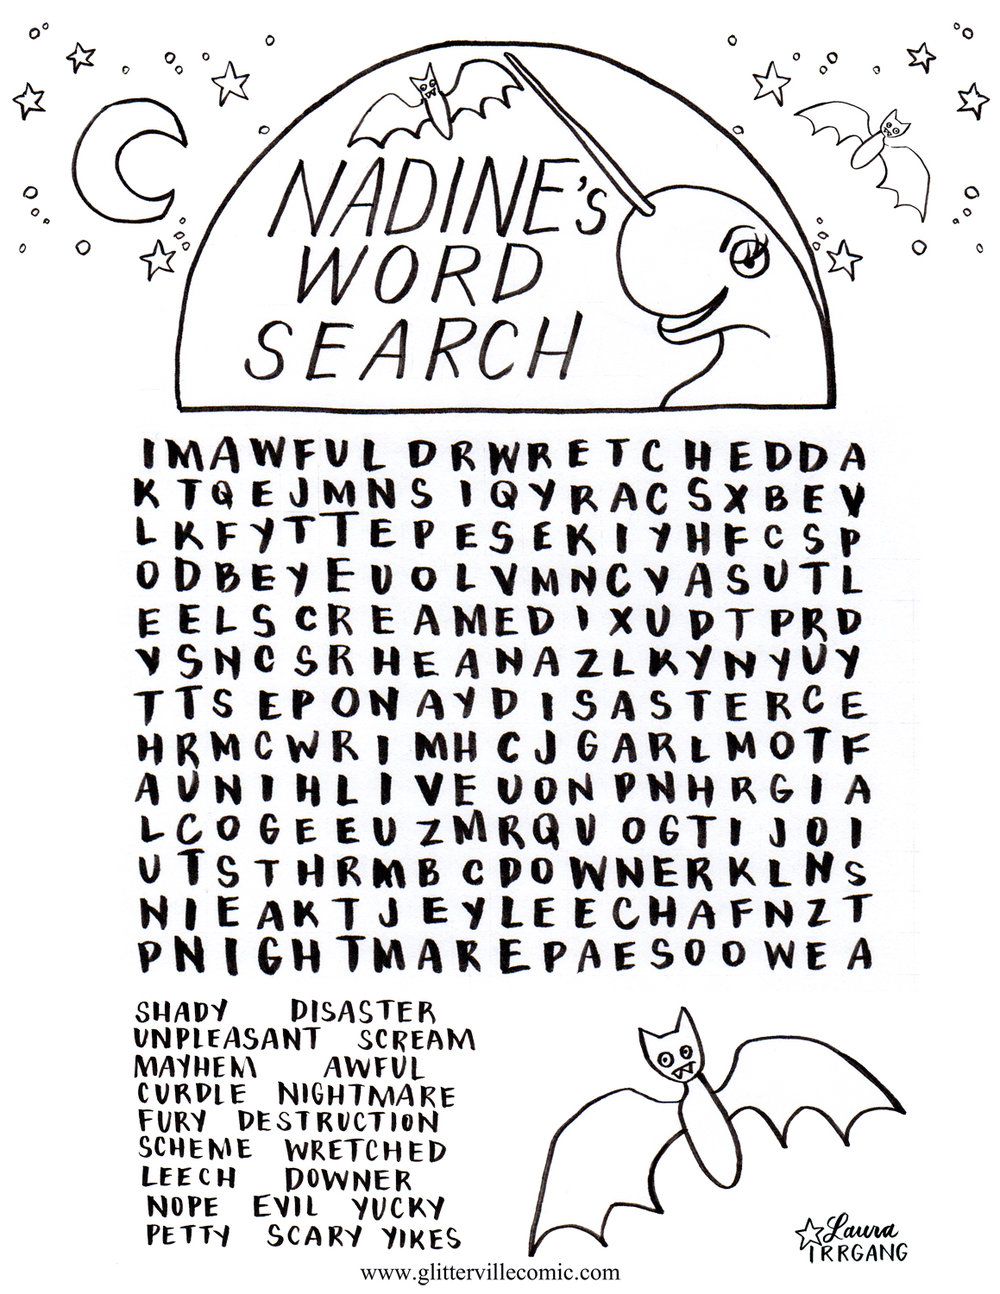 Nadine's word search black and white.jpg